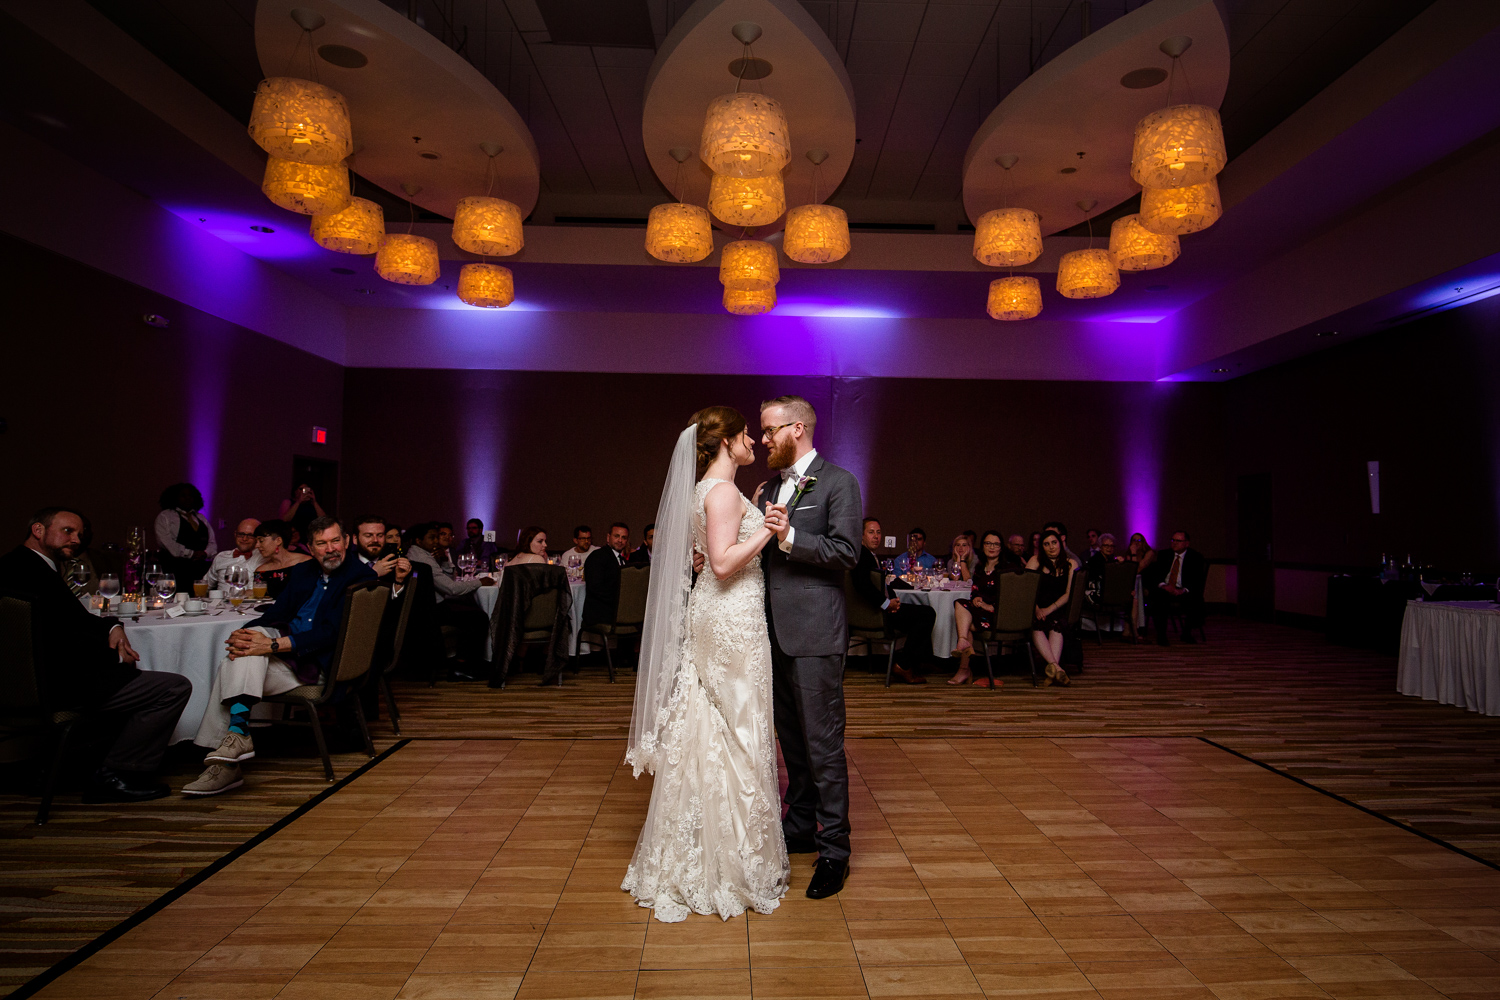 First Dance at I Hotel in Champaign IL